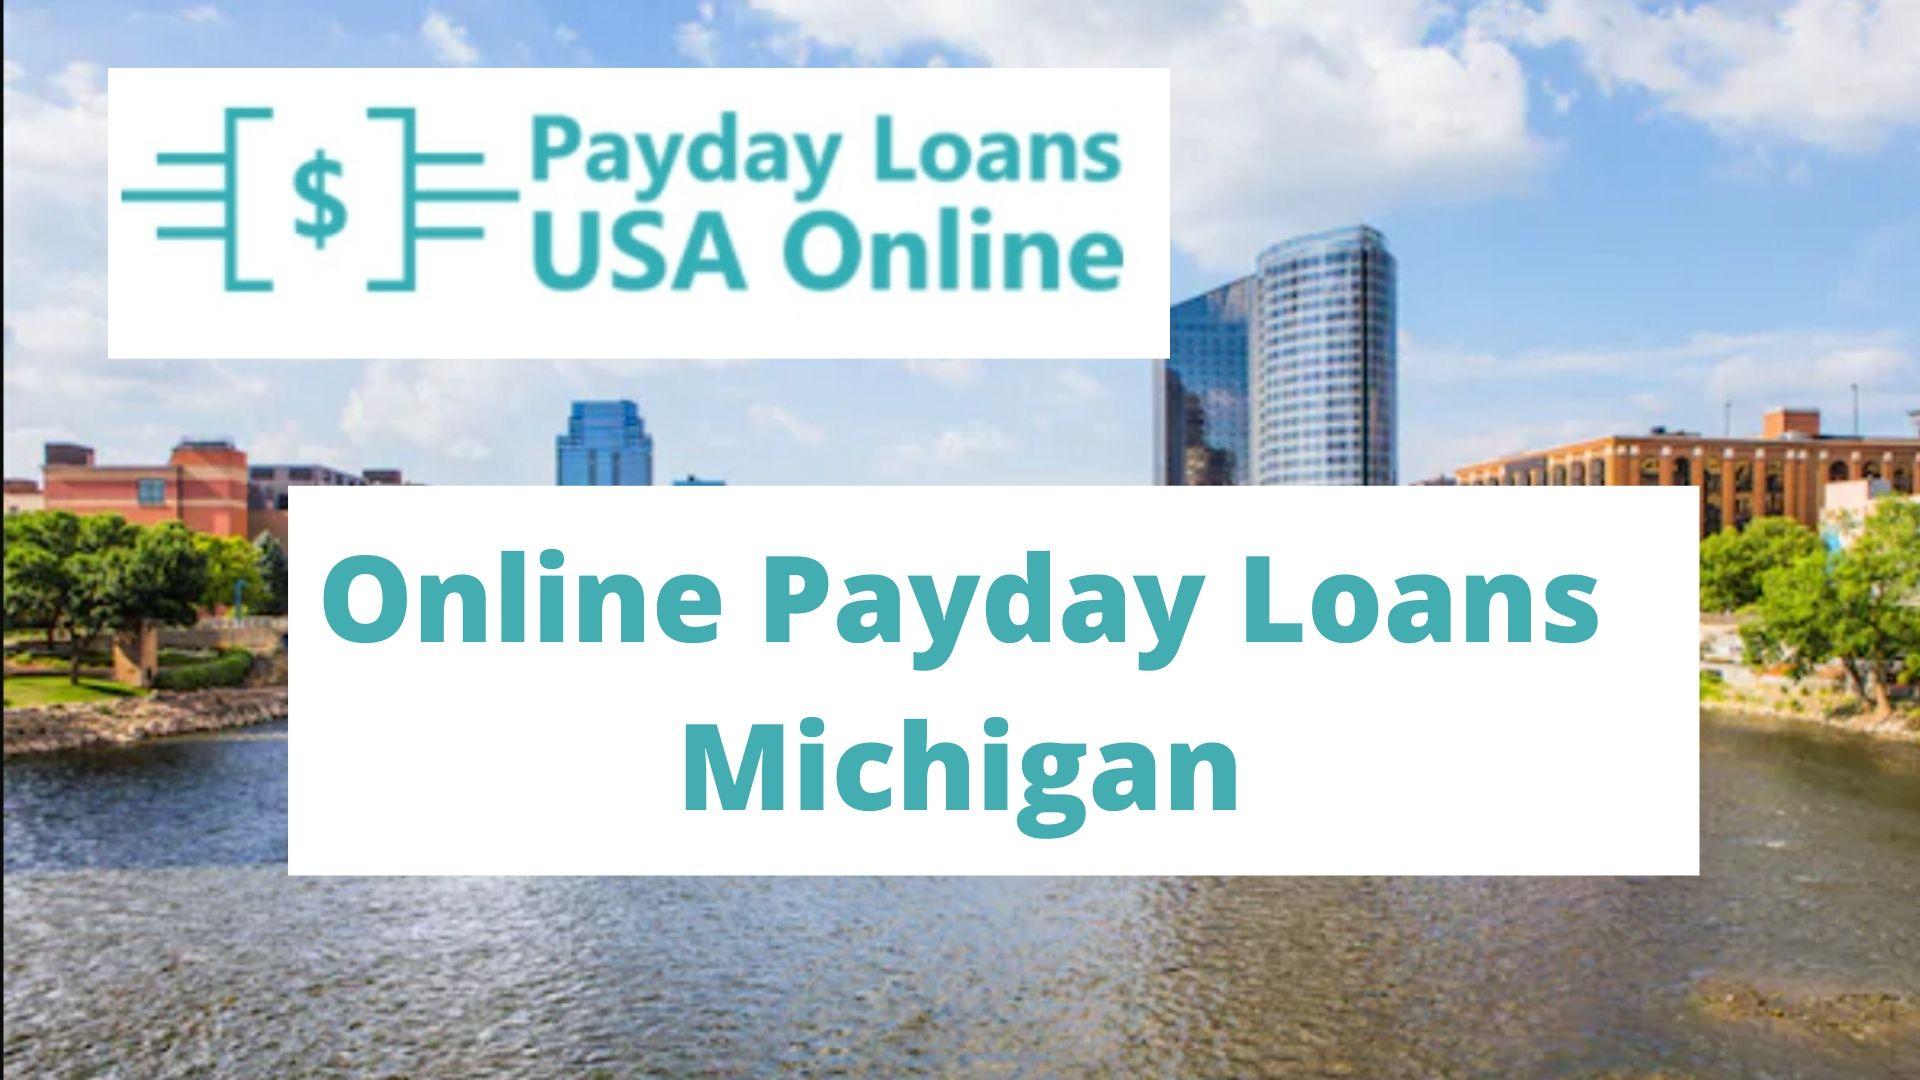 Online Payday Loans Michigan